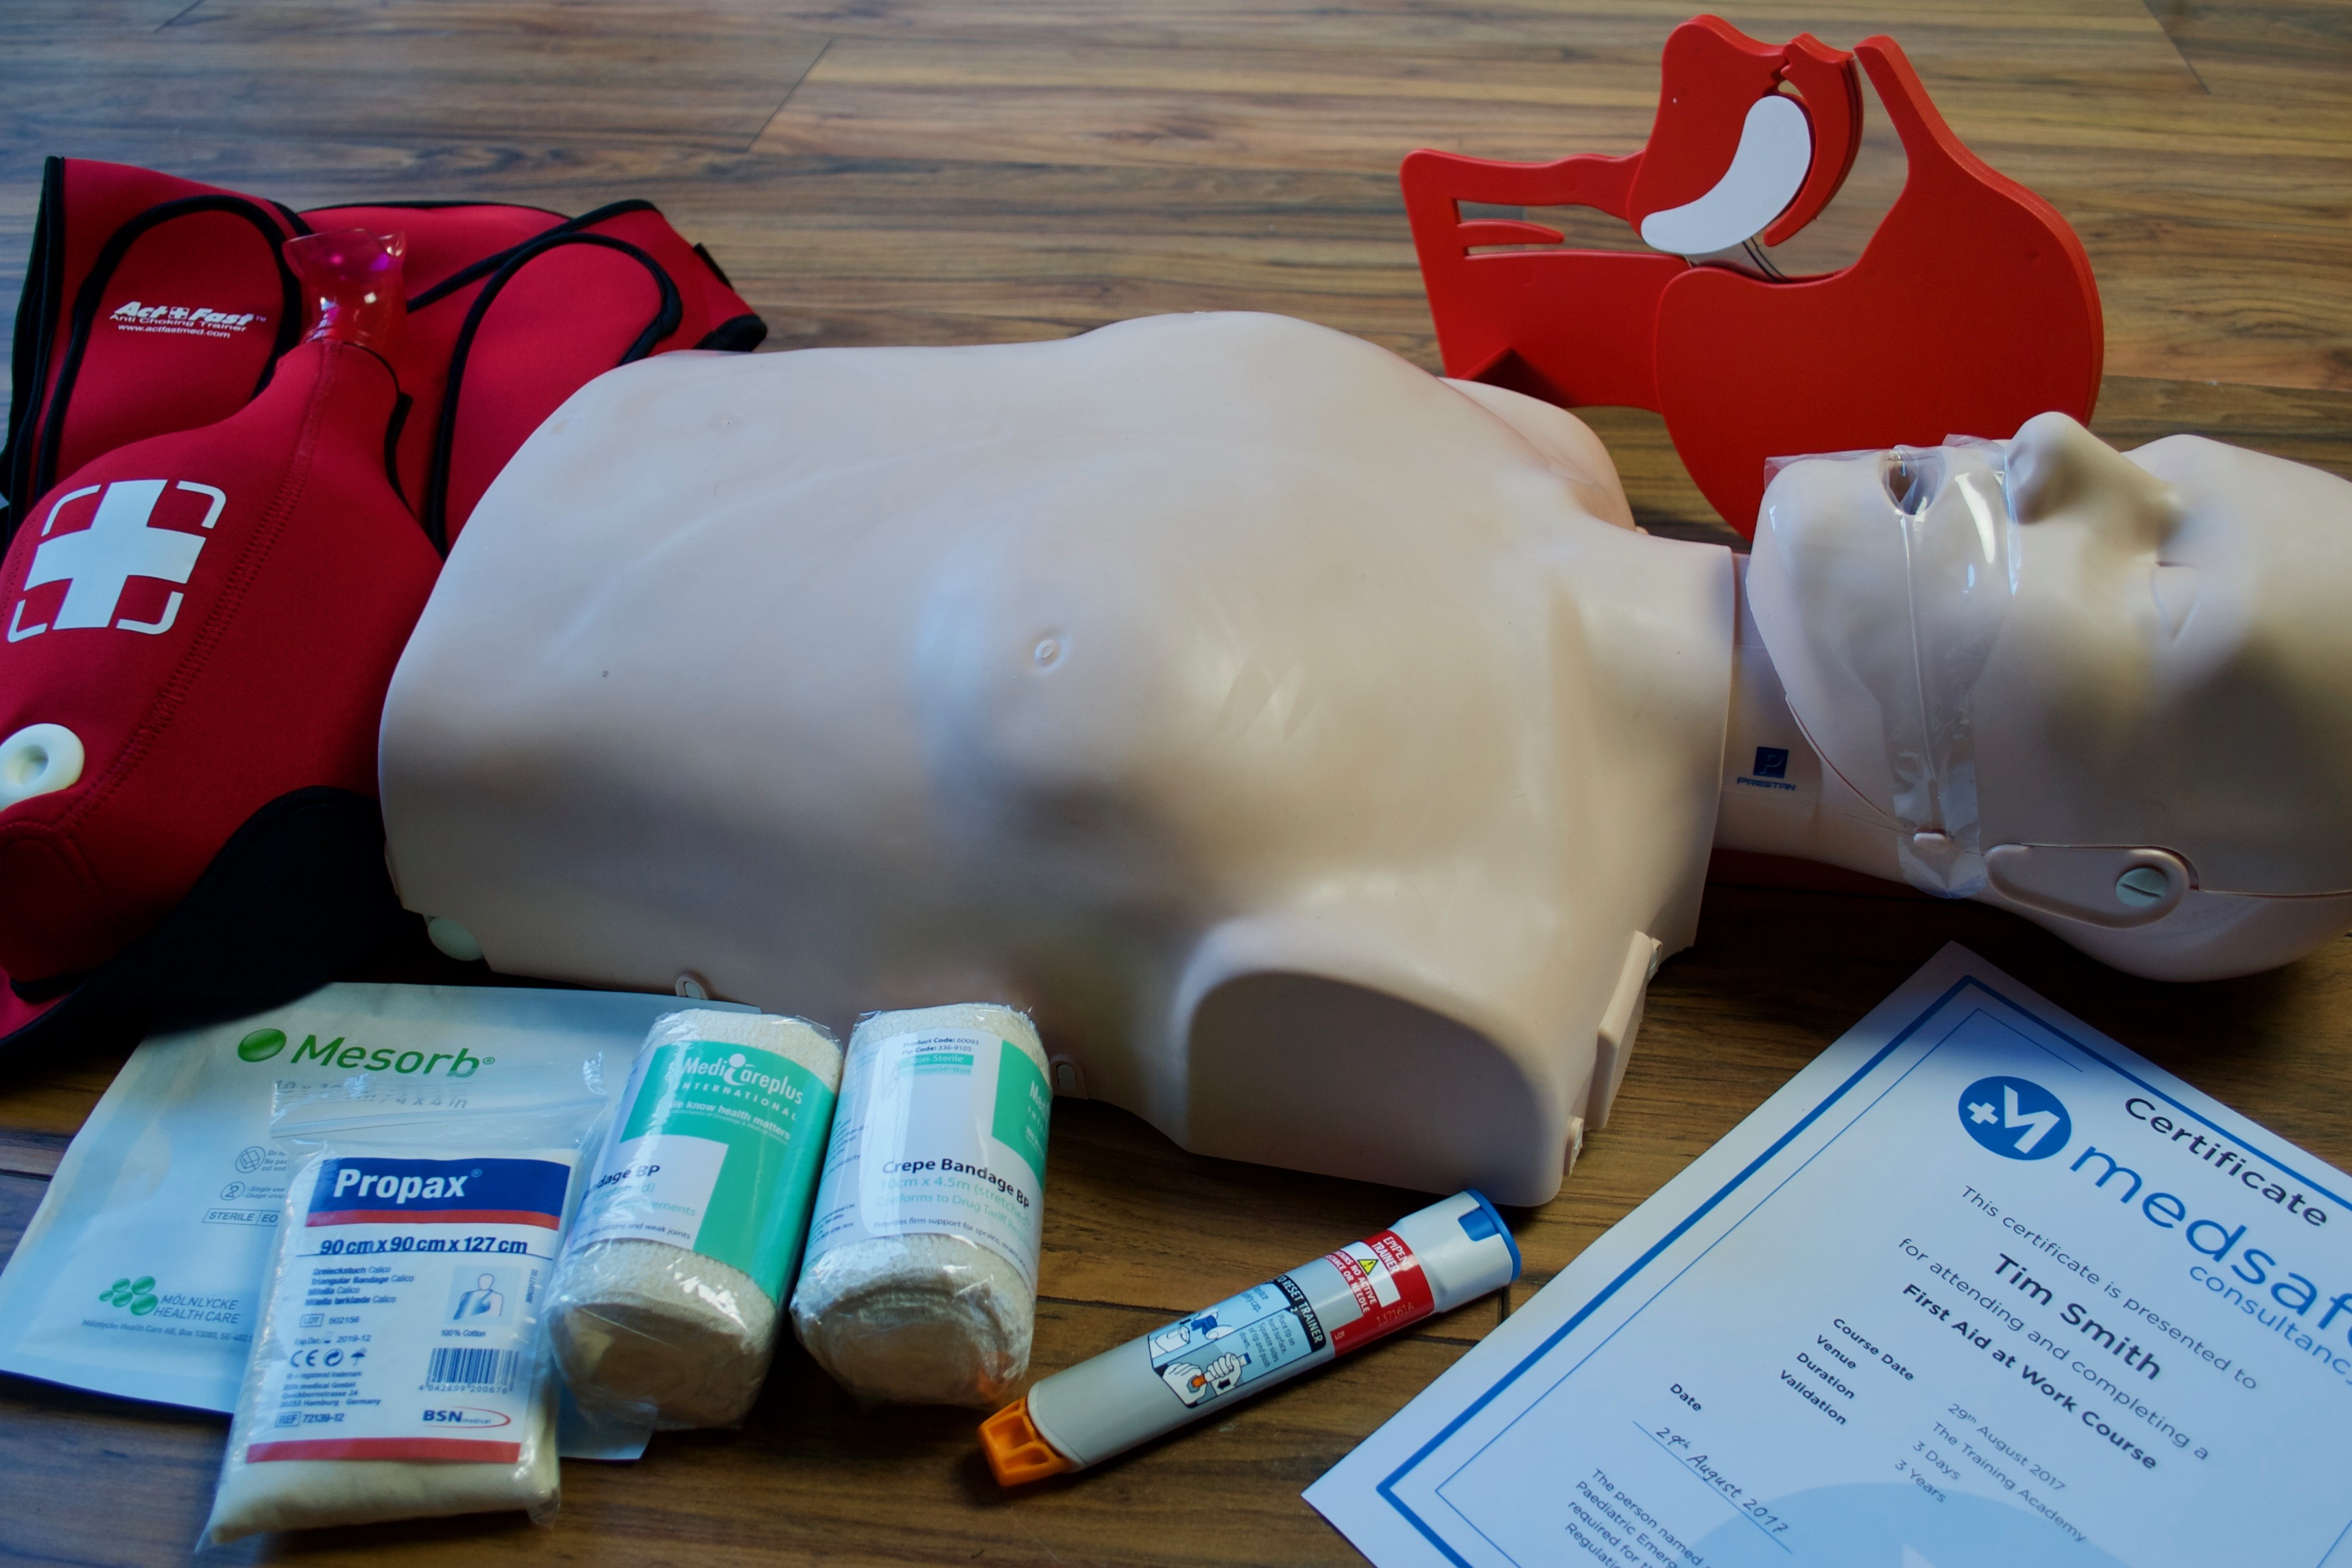 First aid courses in Northern Ireland